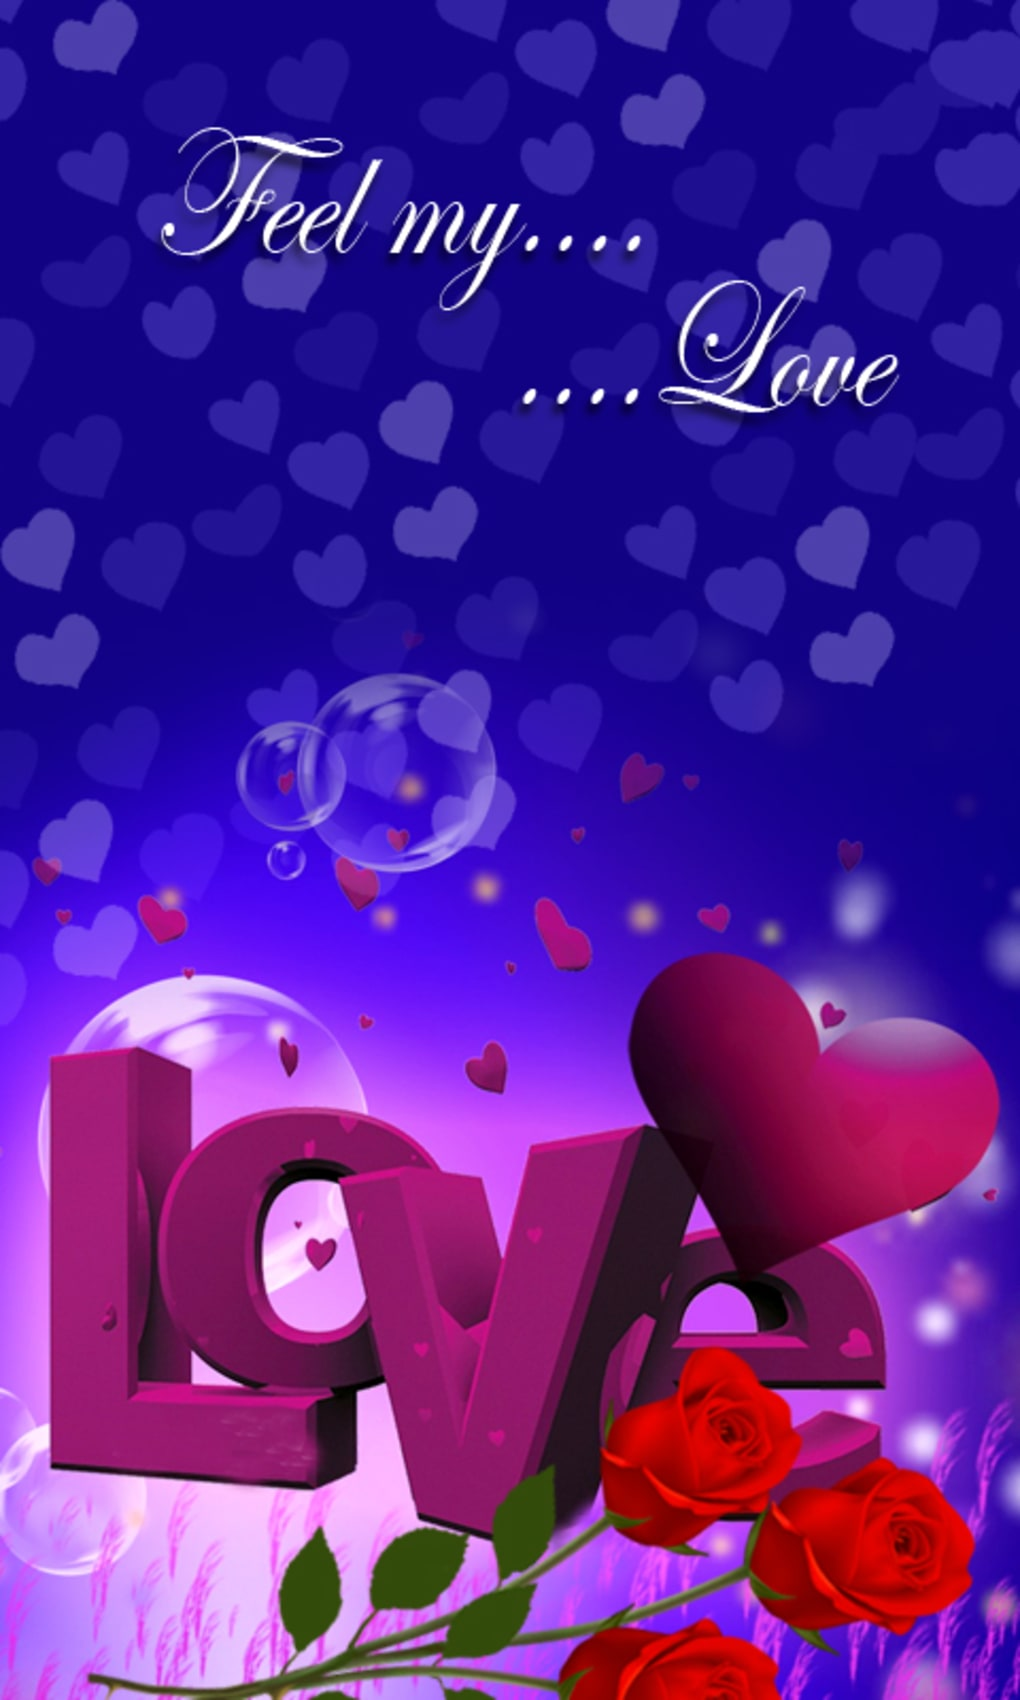 Love Live Wallpaper Hd New For Android Download